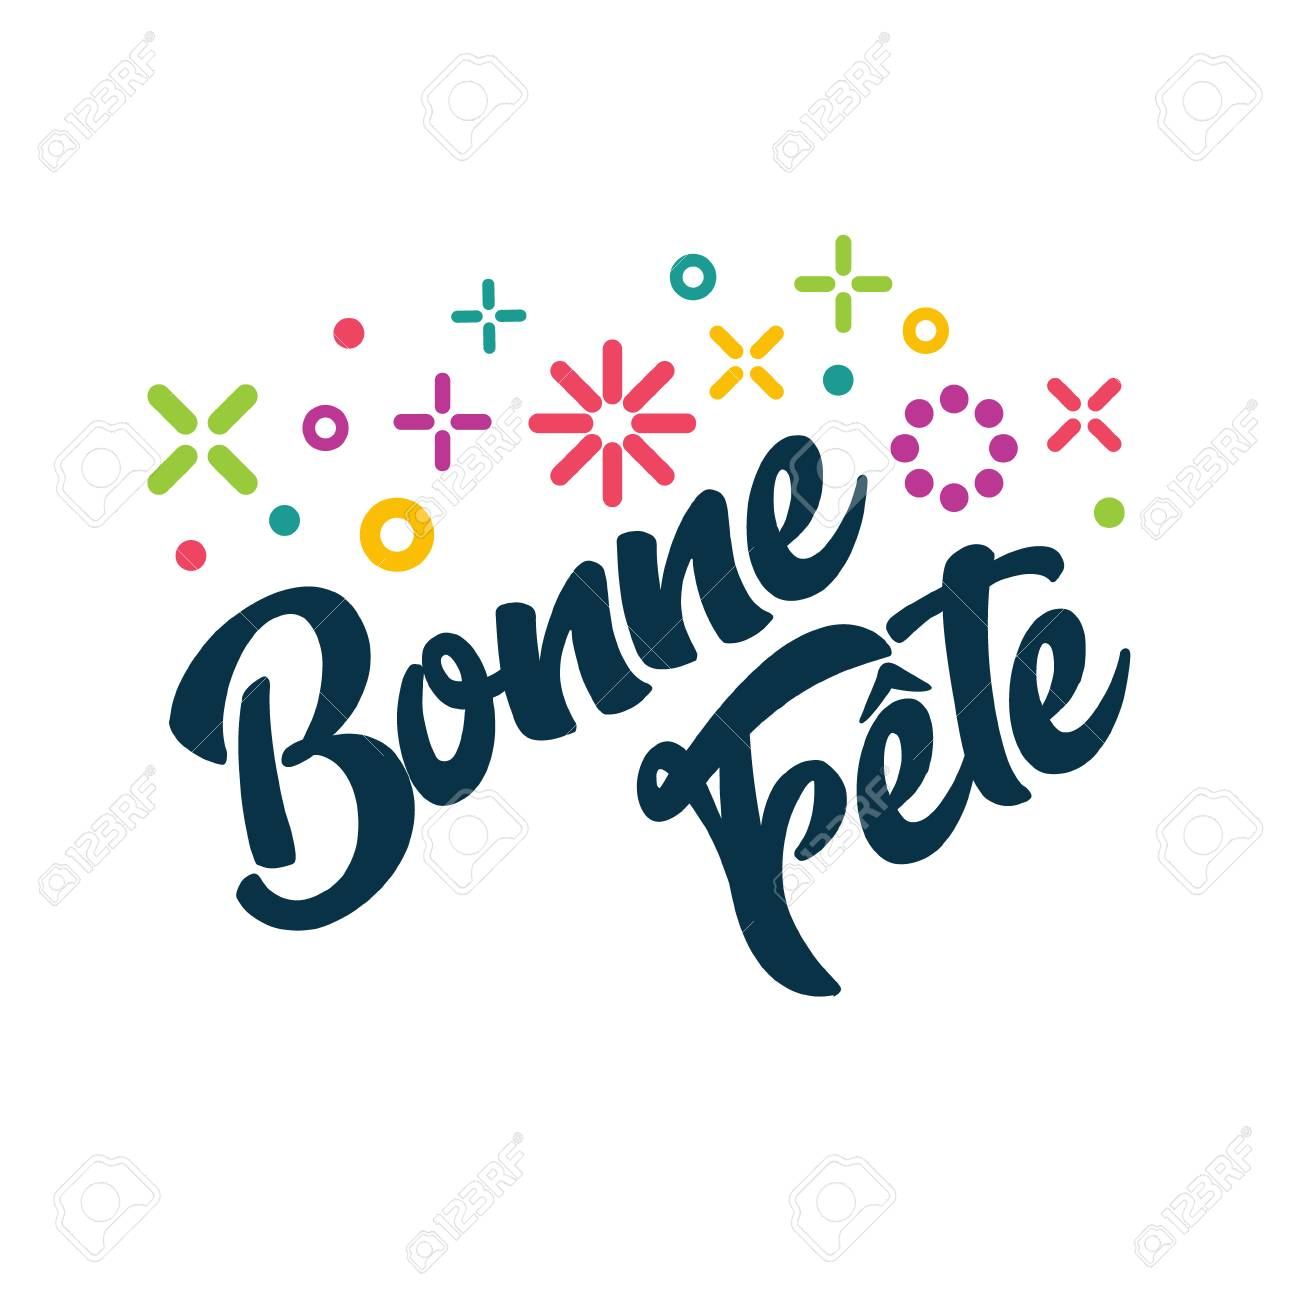 Bonne fete french happy birthday greeting invitation card royalty bonne fete french happy birthday greeting invitation card stock vector 94100097 stopboris Images